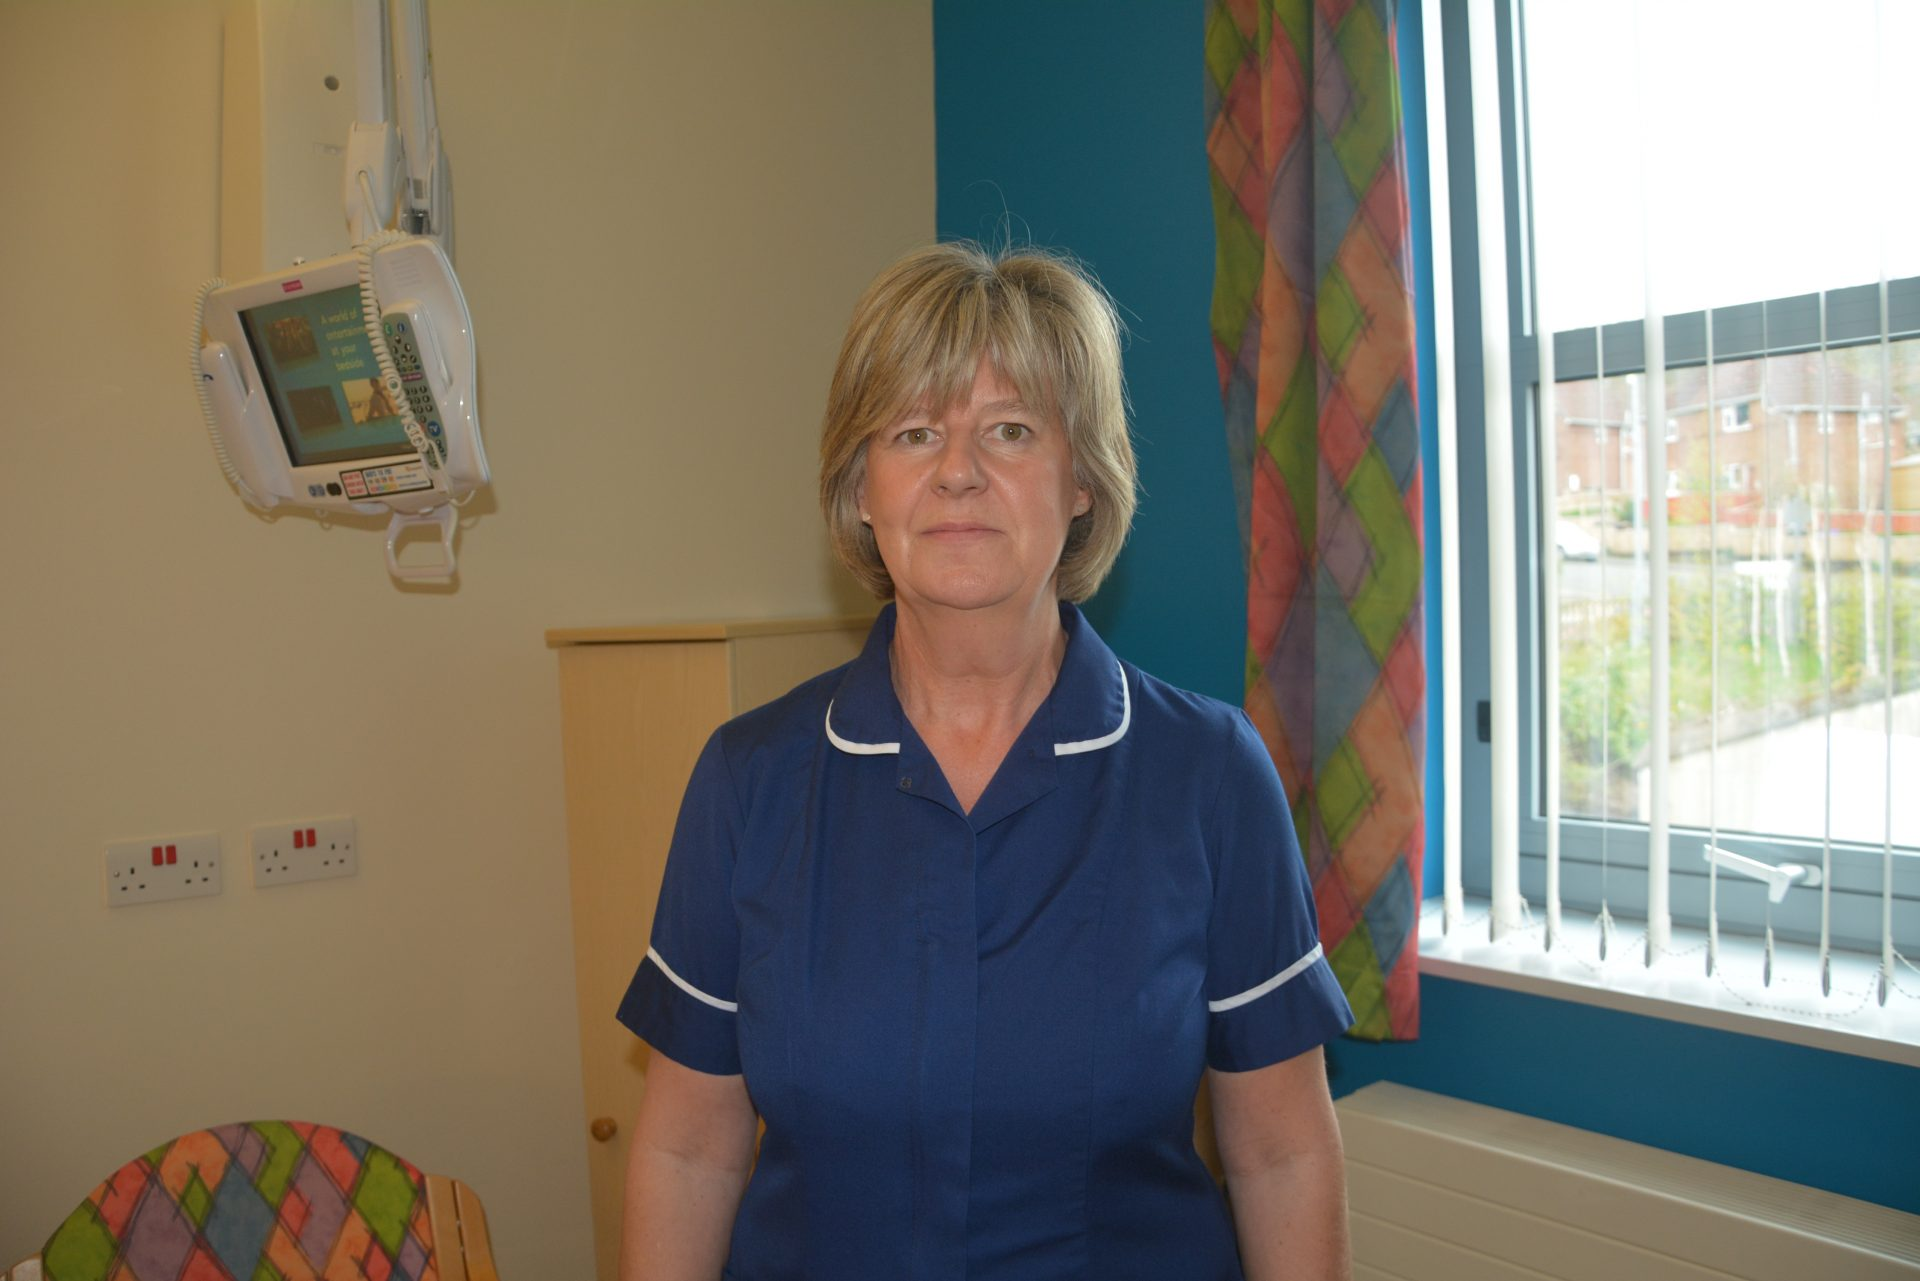 Celebrating international day of the midwife with Hexham midwife Jackie Watson